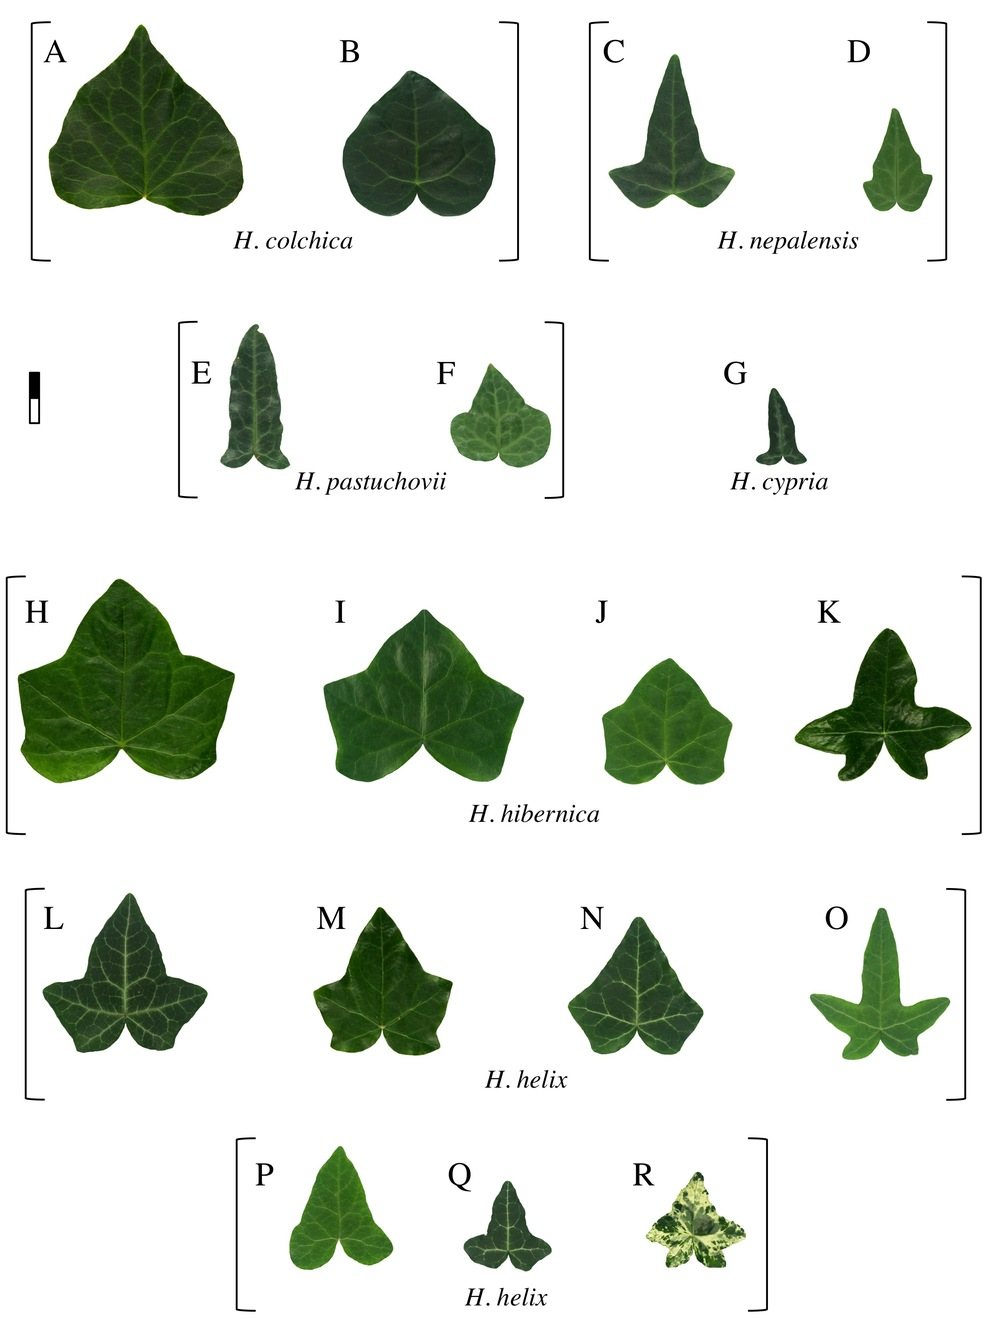 Ivy leaf morphology, plate 2